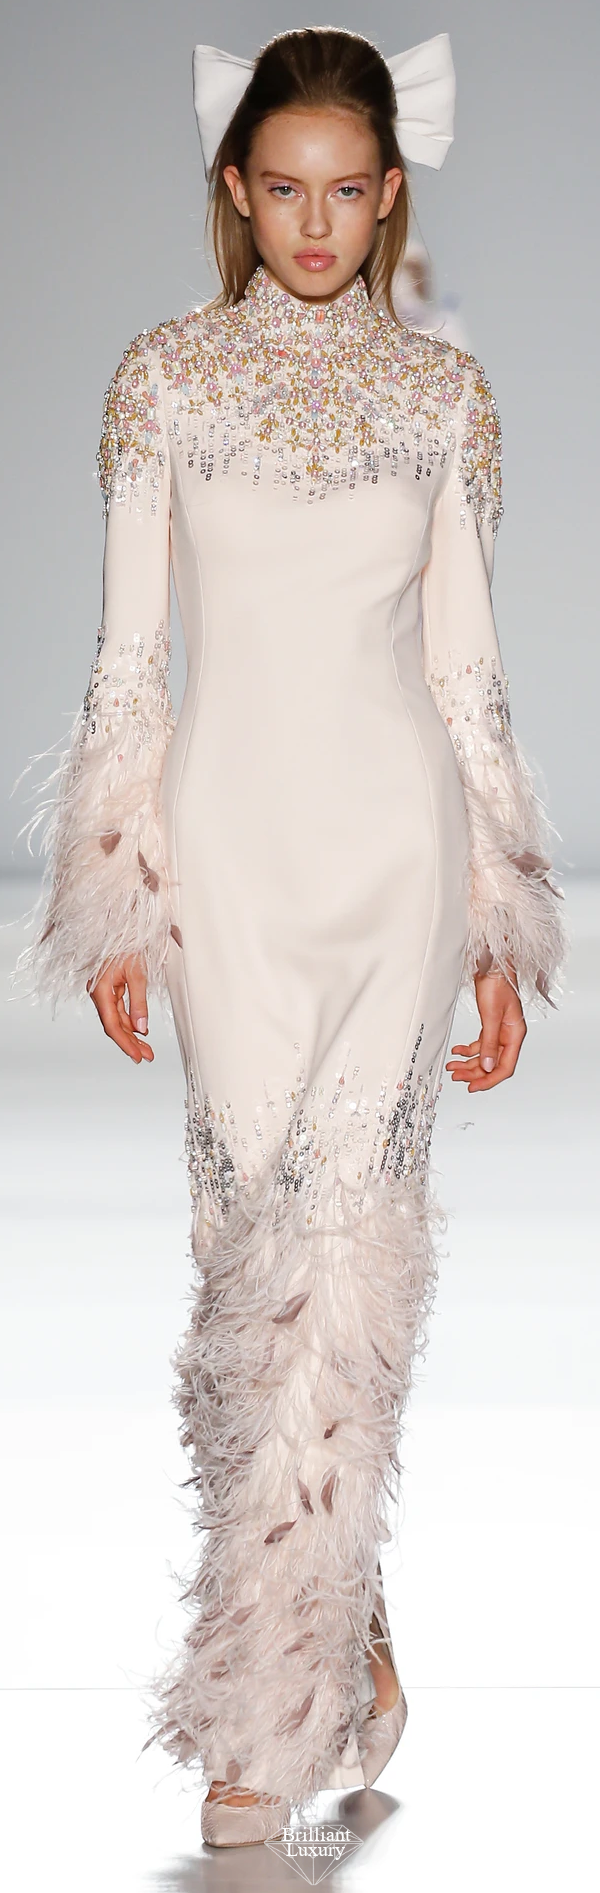 Ralph & Russo pale peach silk crêpe cady column gown featuring long bell sleeves and adorned with sequins xilions crystals ostrich and coque feathers #brilliantluxury